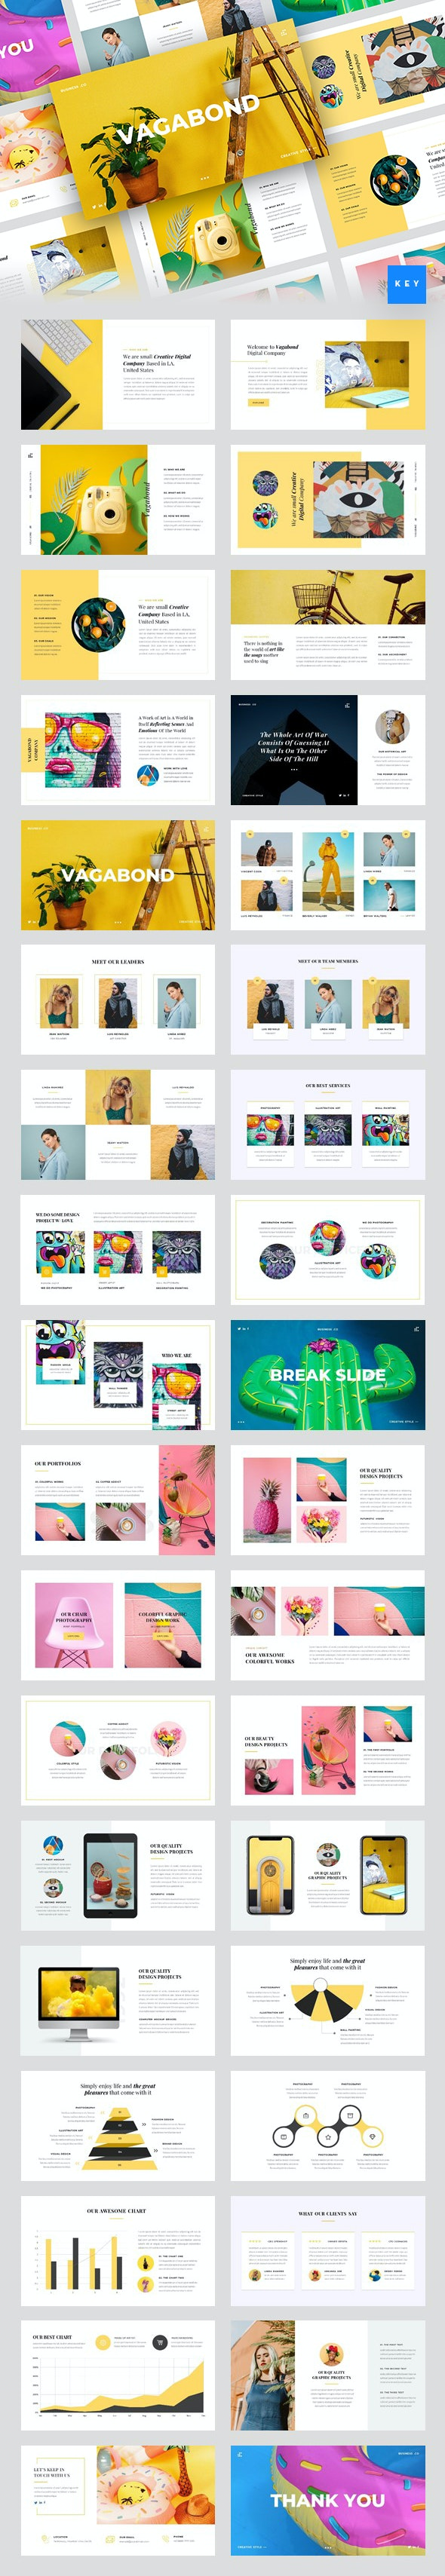 Vagabond - Creative & Business Keynote Template - Creative PowerPoint Templates